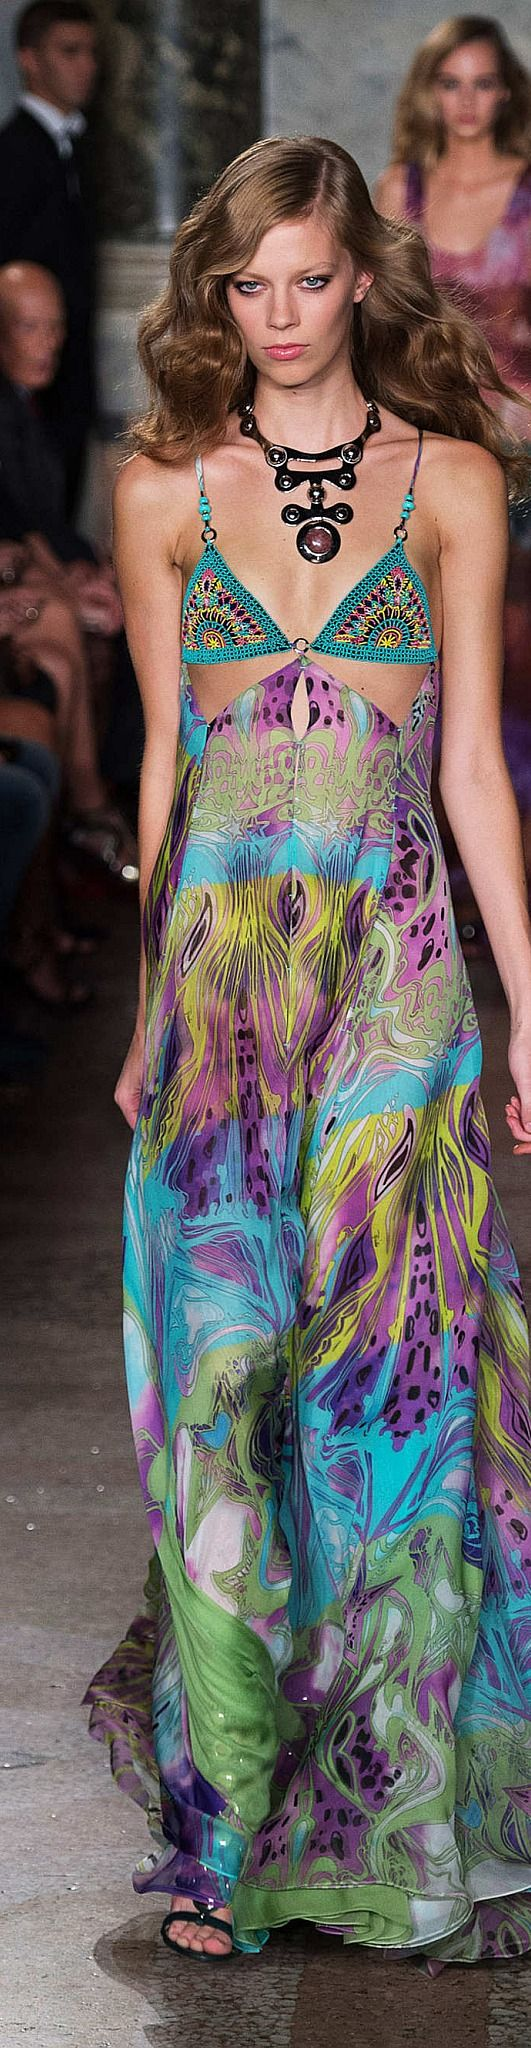 Bohemian Gypsy Chic. Emilio Pucci Collection Spring 2015